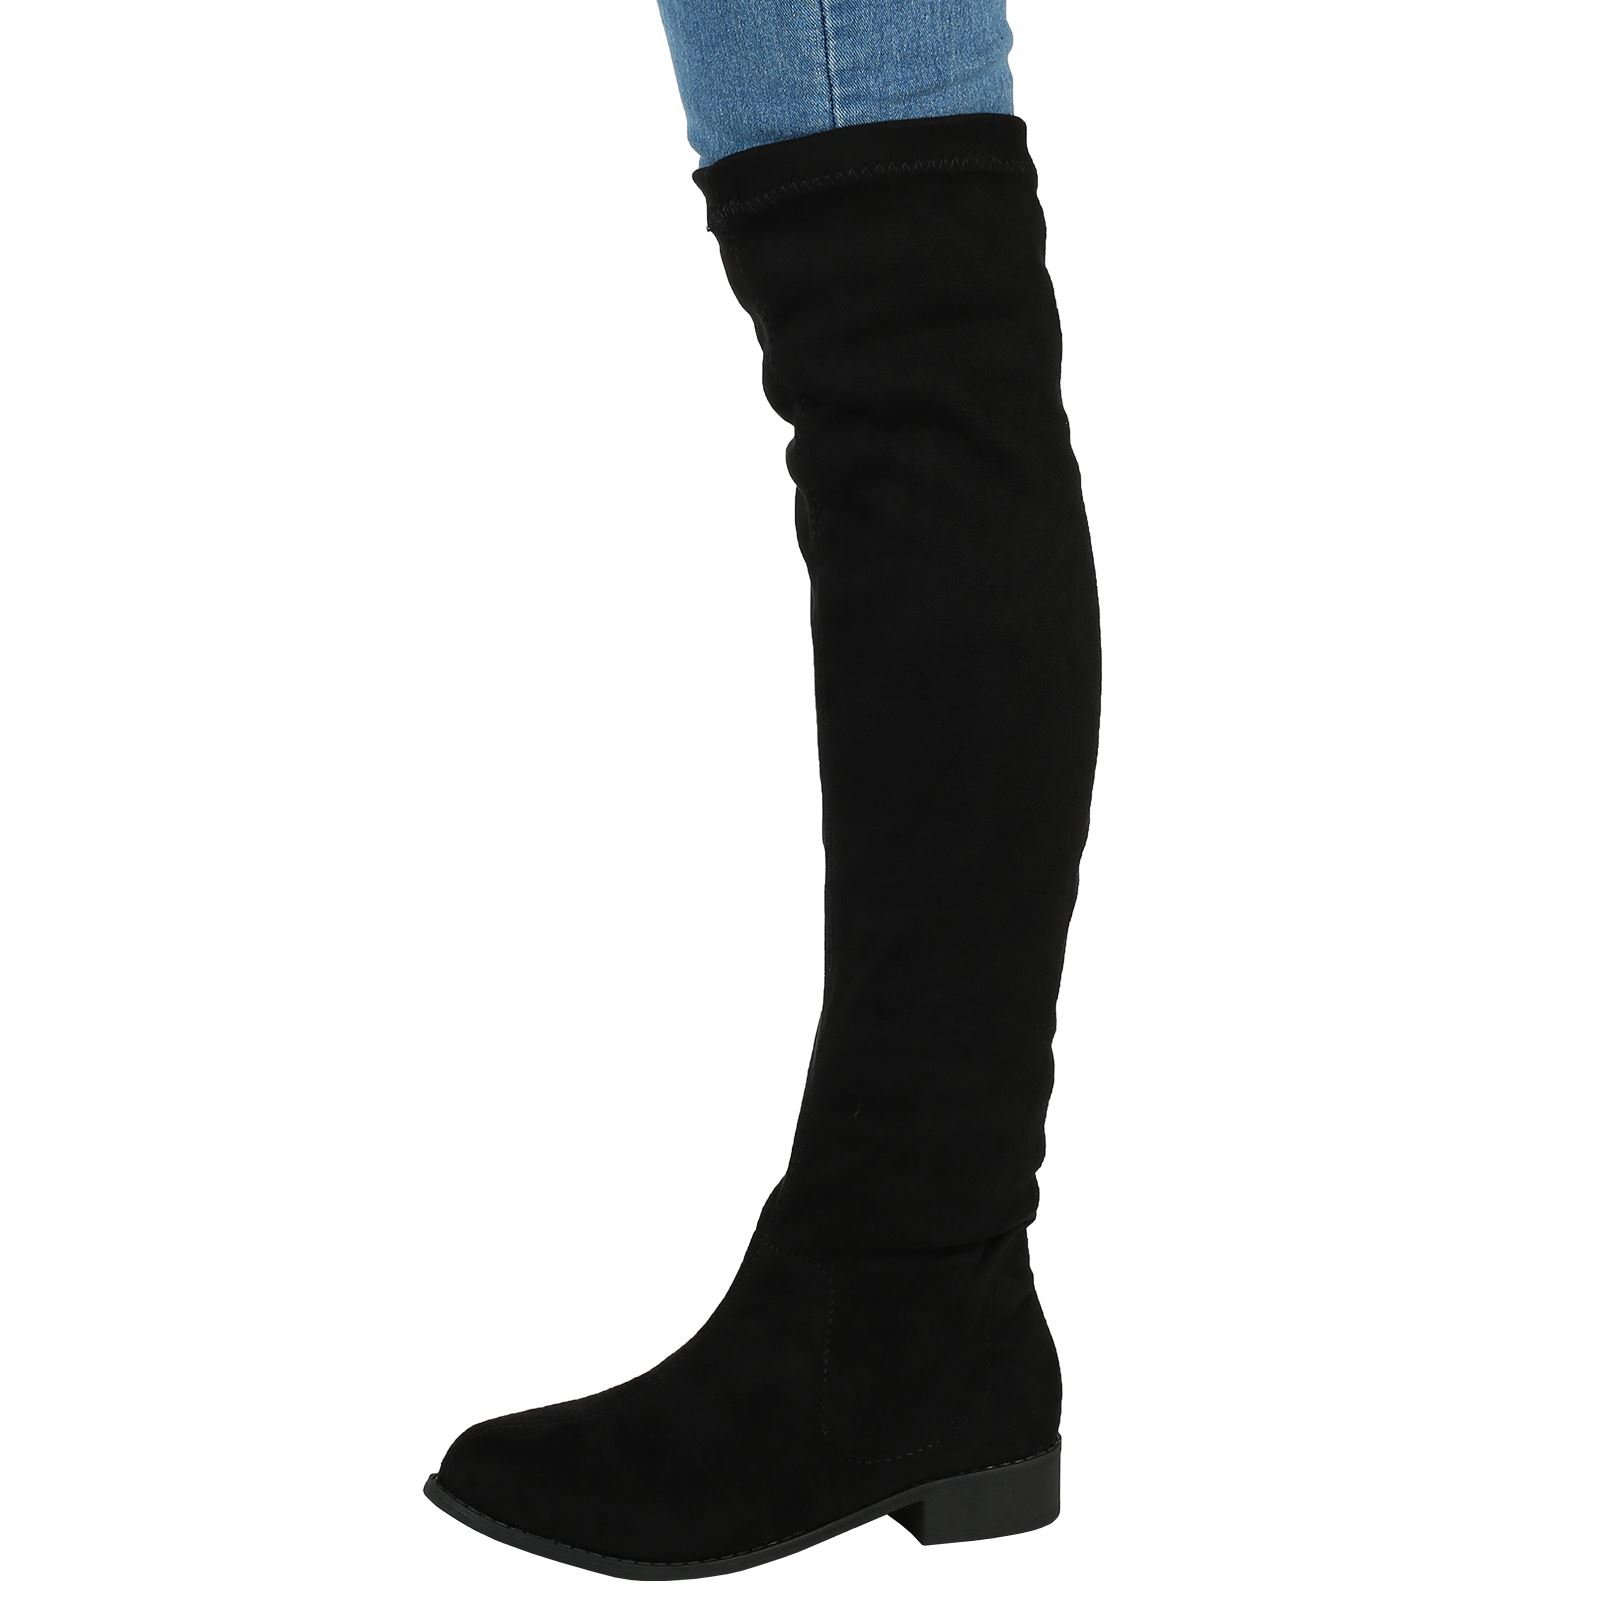 womens boots ladies flat low heel knee high thigh stretch winter soft size new ebay. Black Bedroom Furniture Sets. Home Design Ideas